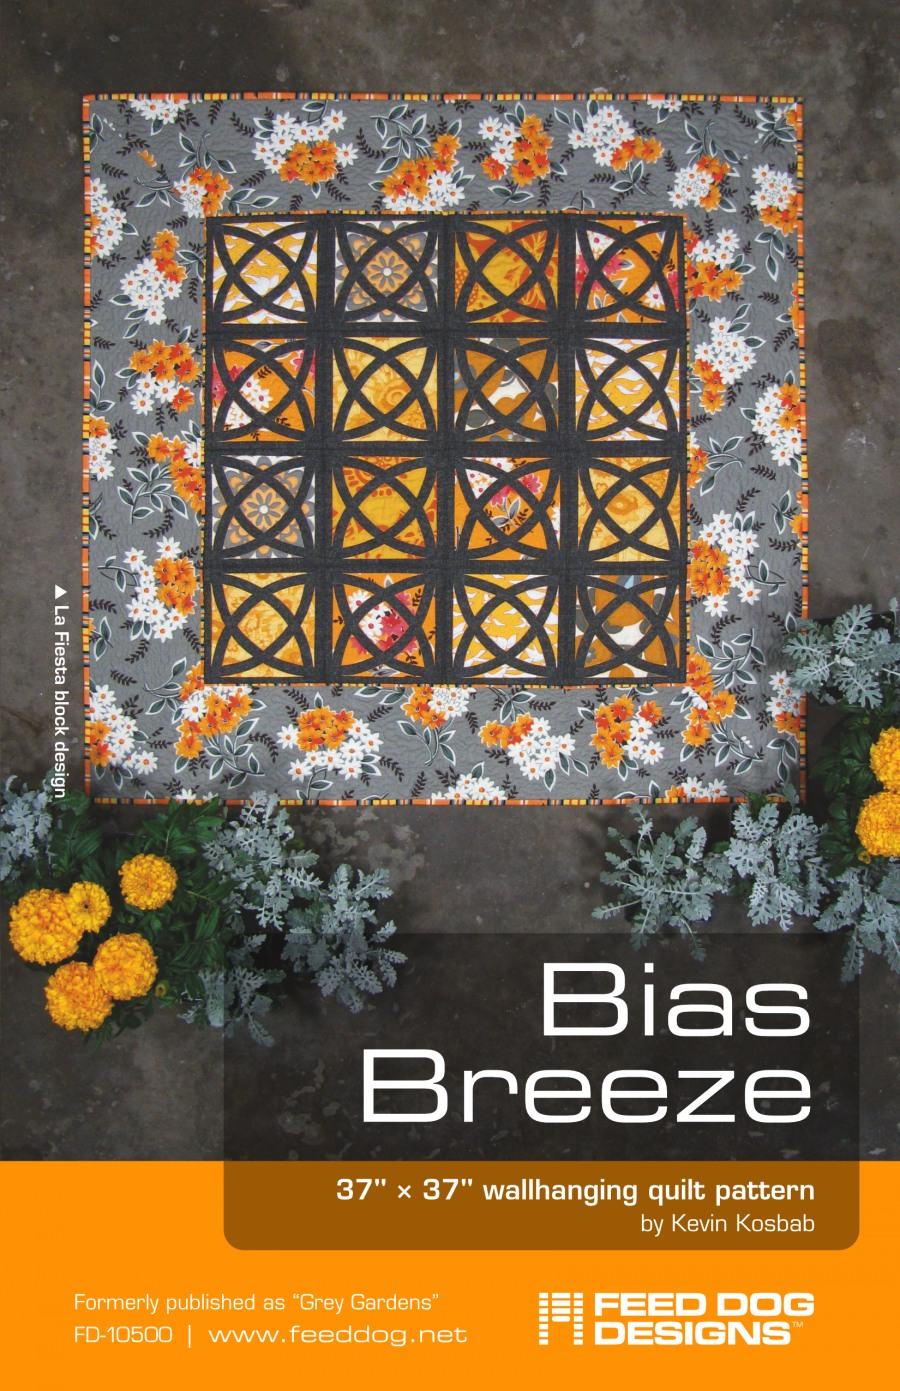 front cover featuring La Fiesta version of quilt